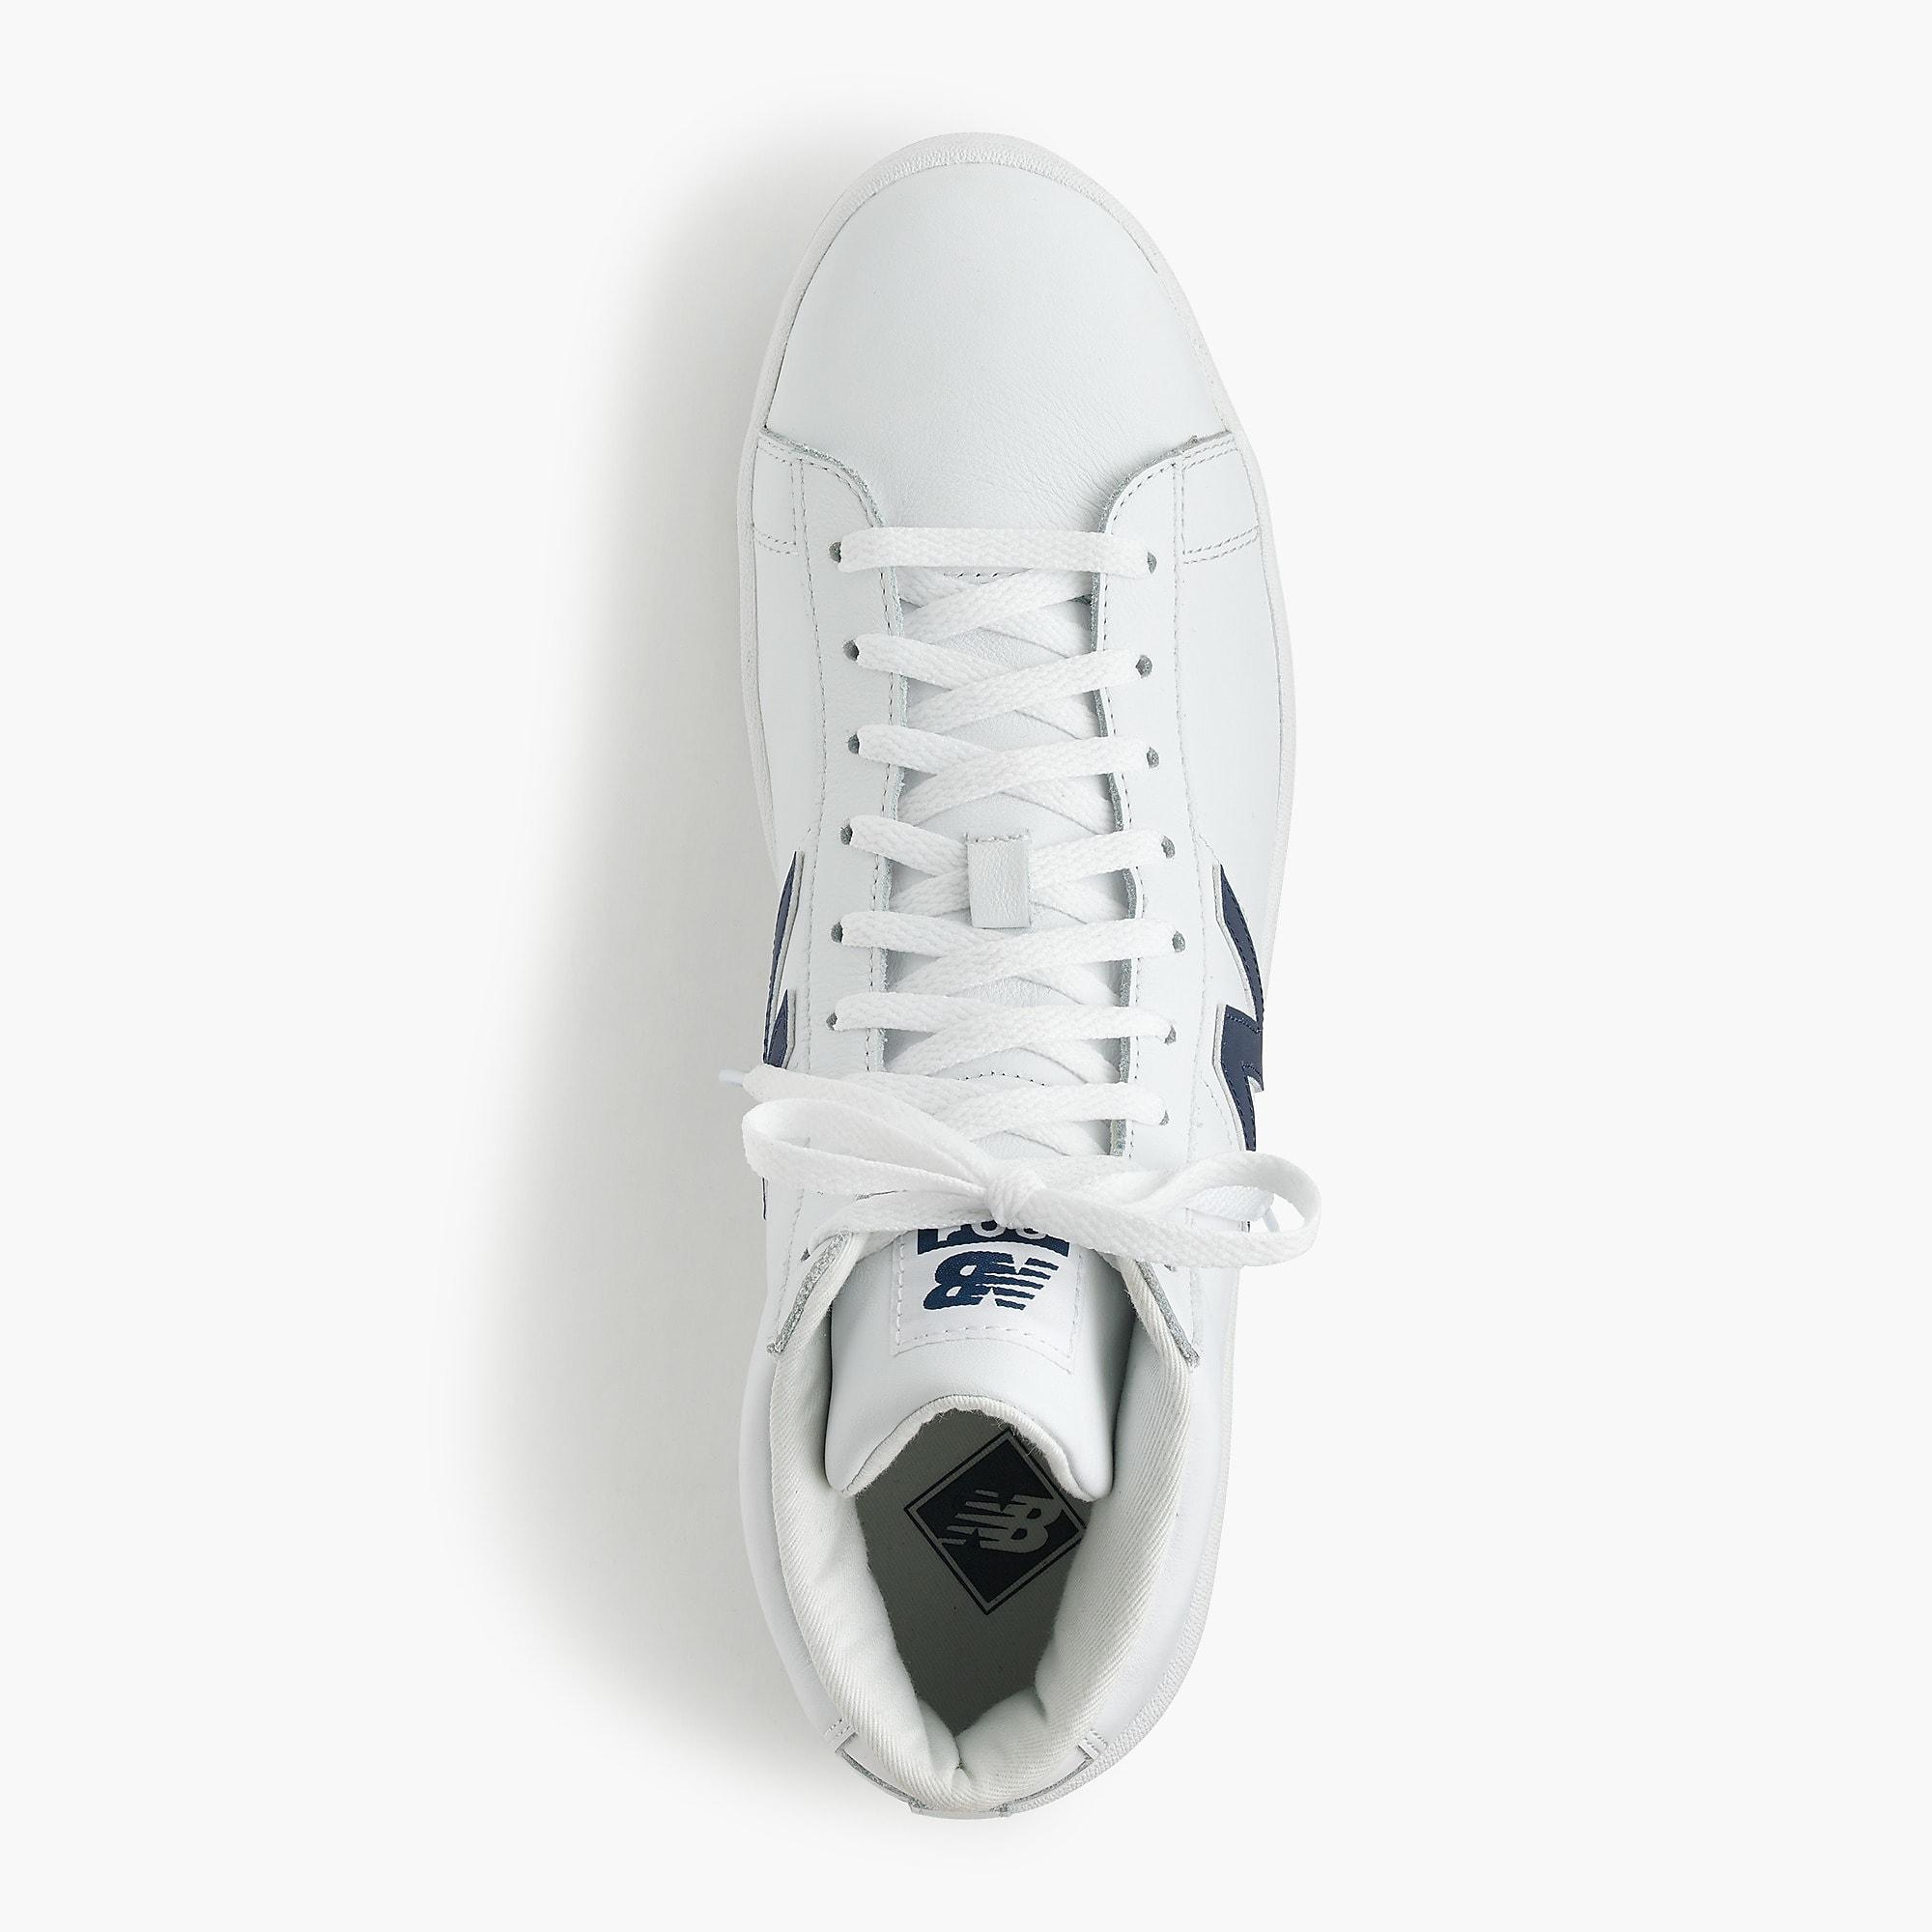 c9f90cac653 New Balance 891 Leather High-top Sneakers in White for Men - Lyst